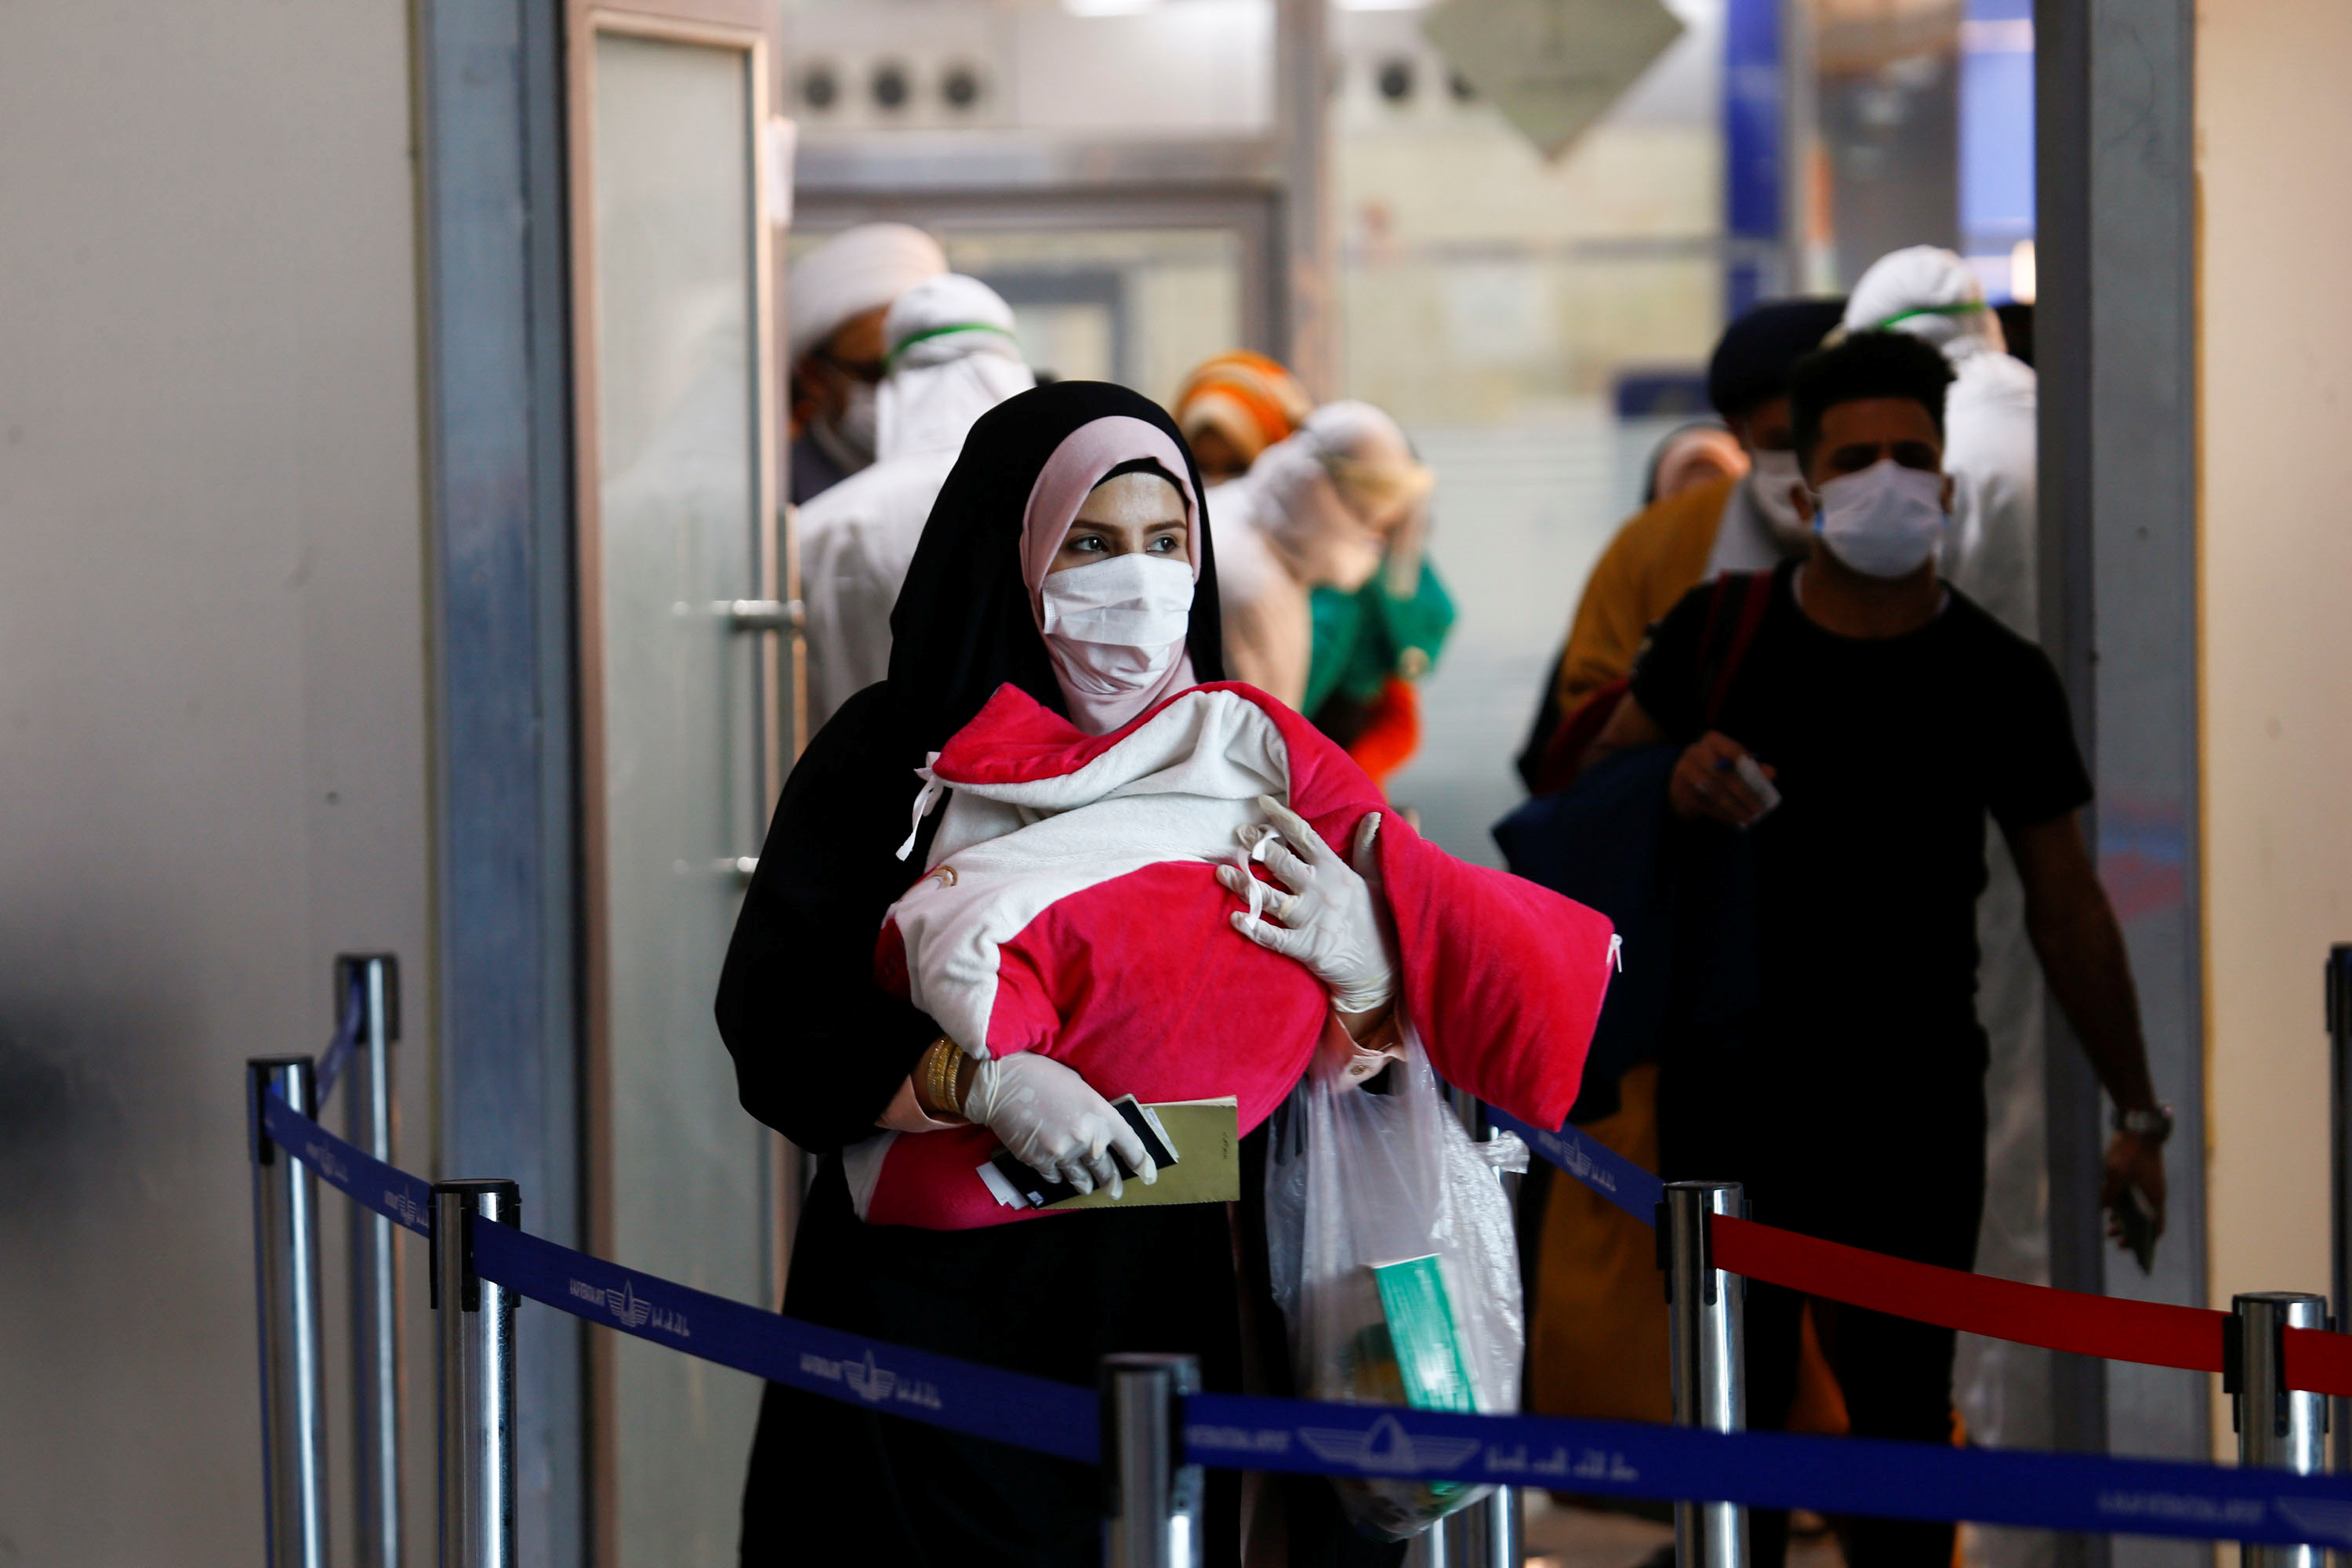 A woman wears a protective mask, as she carries her child amid concerns over the coronavirus (COVID-19) spread, at Najaf airport in the holy city of Najaf upon his arrival from Iran, Iraq March 15, 2020. REUTERS/Alaa al-marjan